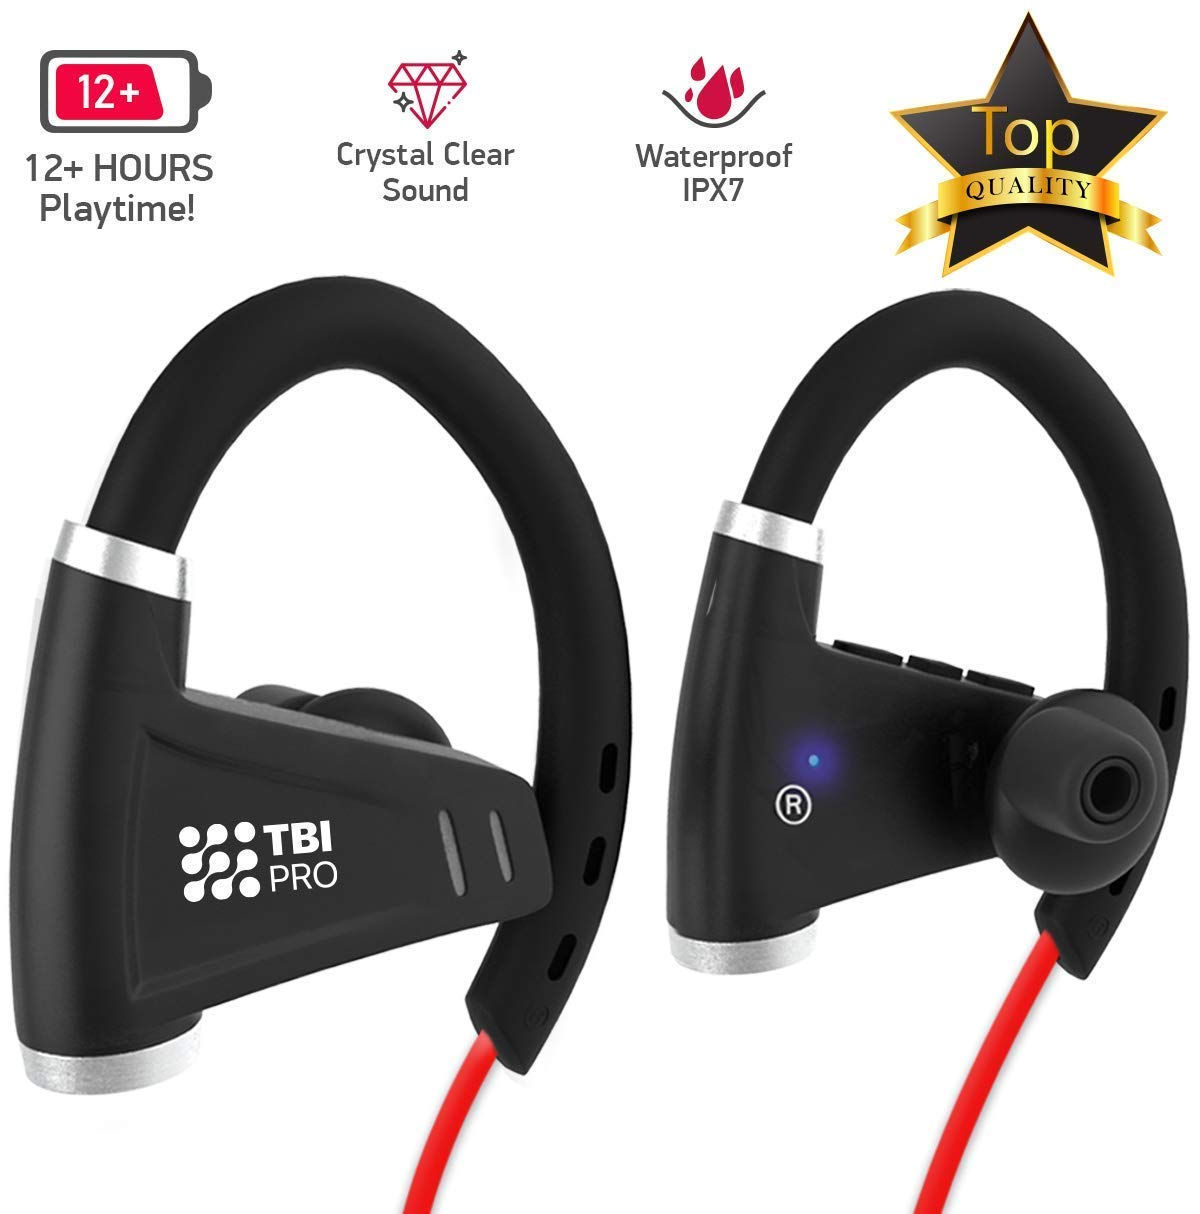 Bluetooth Workout Headphones Best Buy Bluetooth Headphones J B L Bluetooth Headset Vibration Bluetooth Keyboard Touchpad Raspberry Pi: All-New 2019 Bluetooth Headphones W/ 12+ Hours Battery